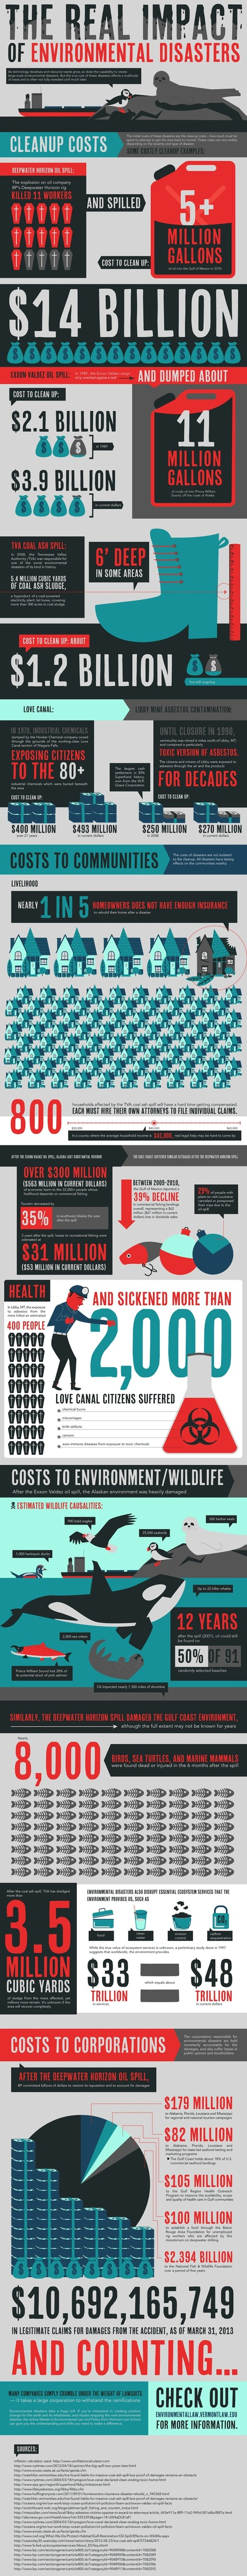 The Real Impact Of Environmental Disasters [Infographic] | Electric Cars | Scoop.it